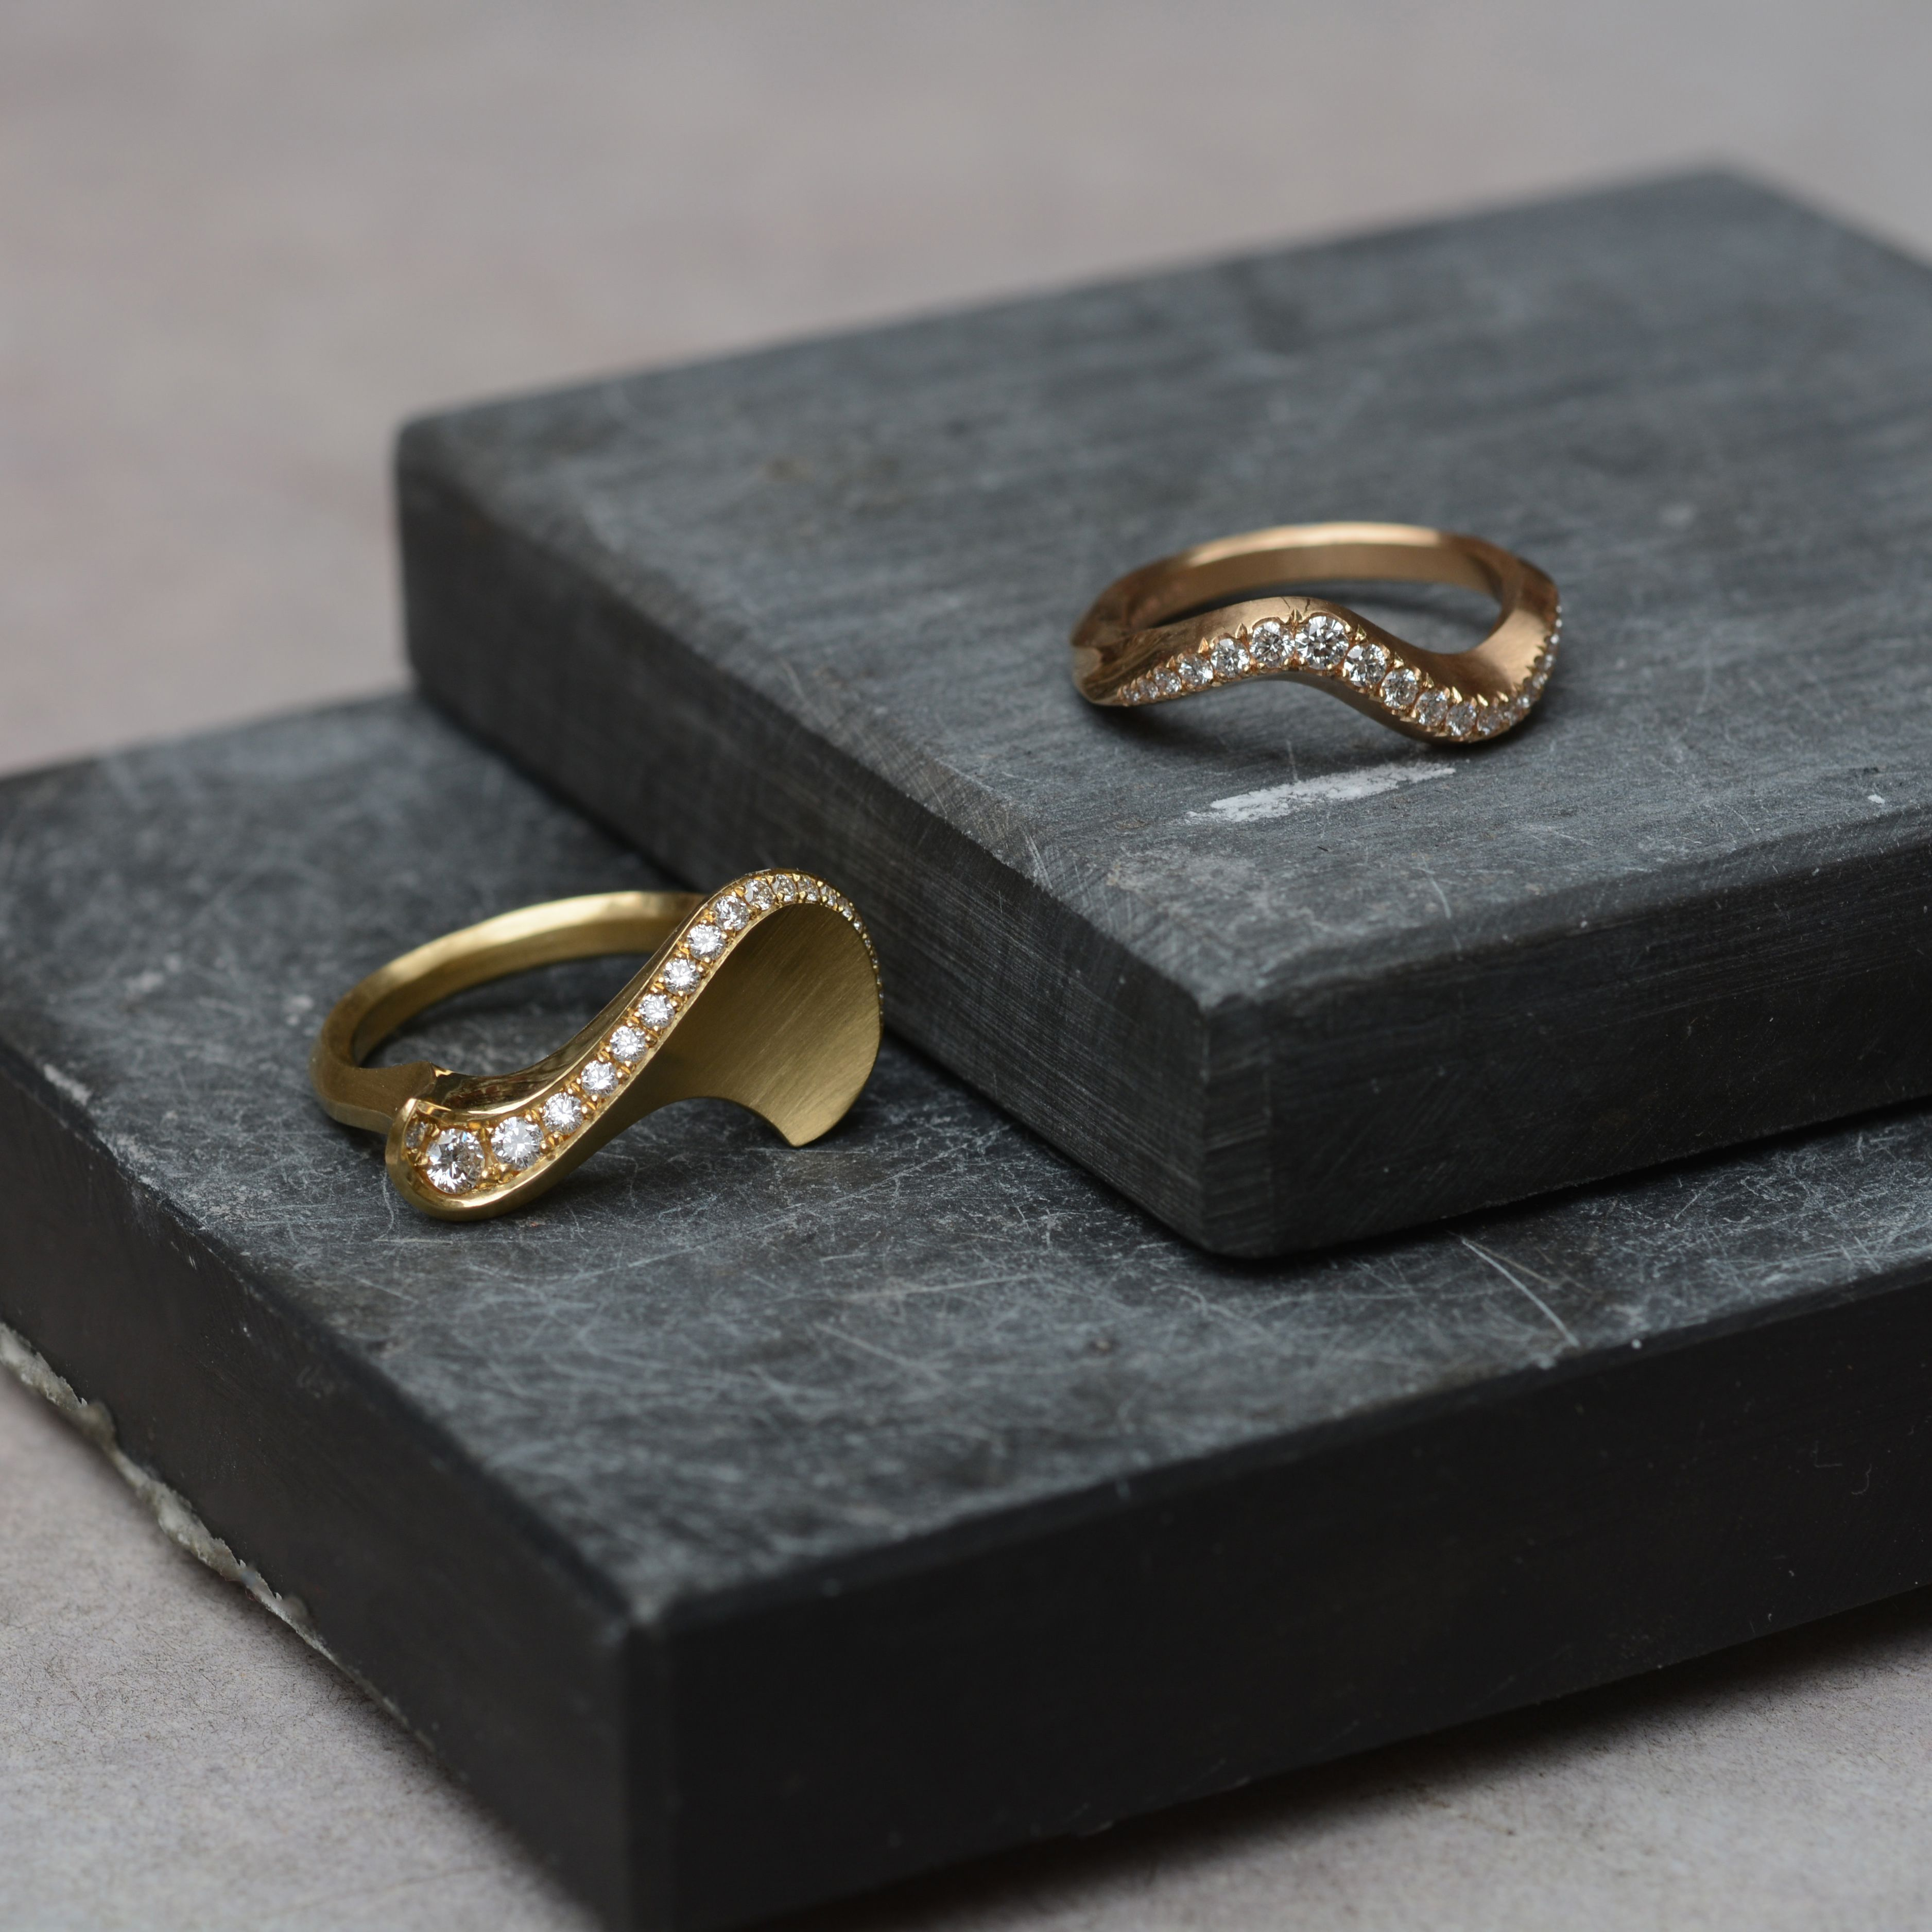 Two of our unique hand carved rings, each sculpted in wax and cast in 18ct gold. Which one would you choose?  #sigmaring #arrisring #handcarved #handcraftedjewellery #handmadelondon #finejewellery #contemporaryjewellery #jewelleryatelier #jewellerygram #uniquejewellery #bespokejewellery #dressring #engagementring #weddingring #goldsmithing